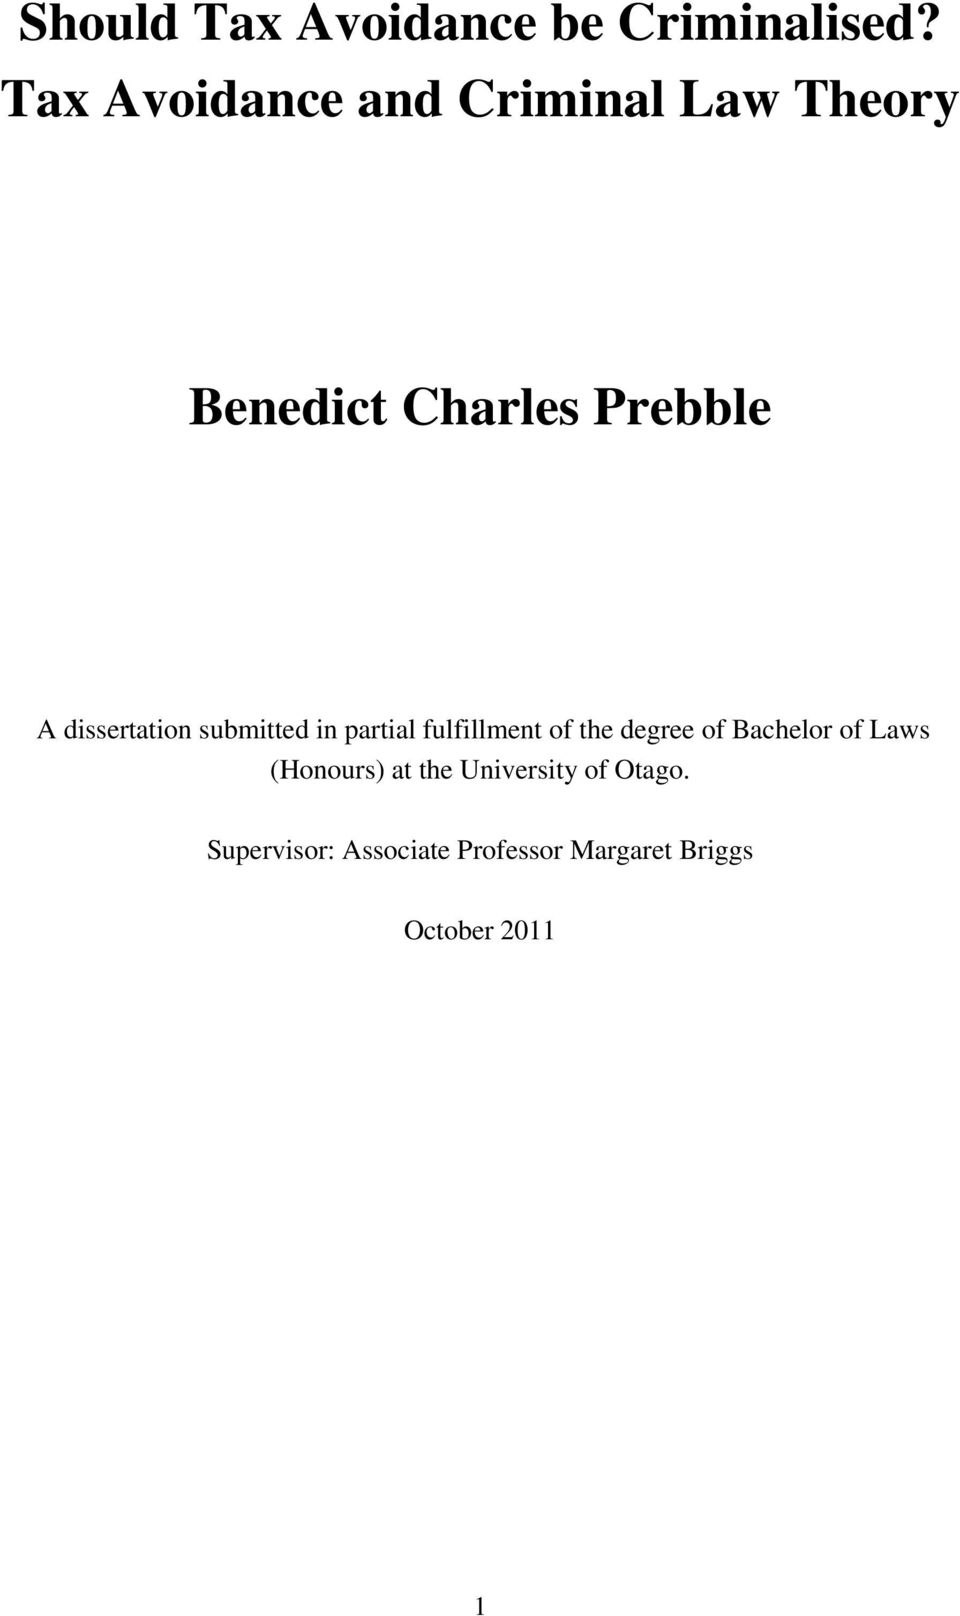 dissertation submitted in partial fulfillment of the degree of